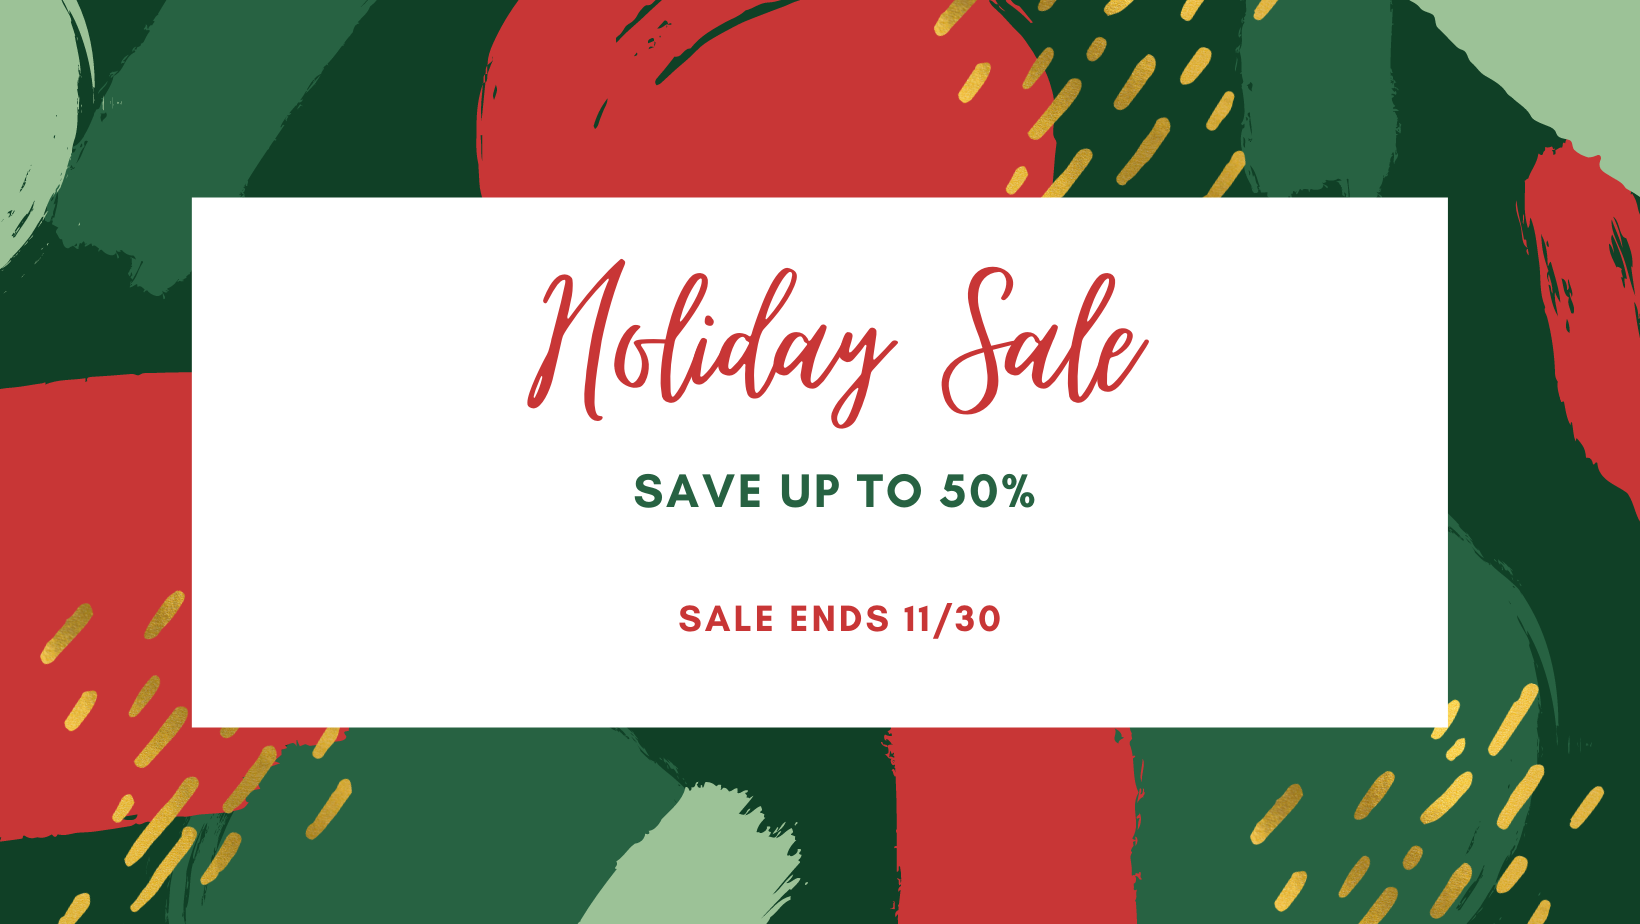 Holiday Sale Save Up To 50%